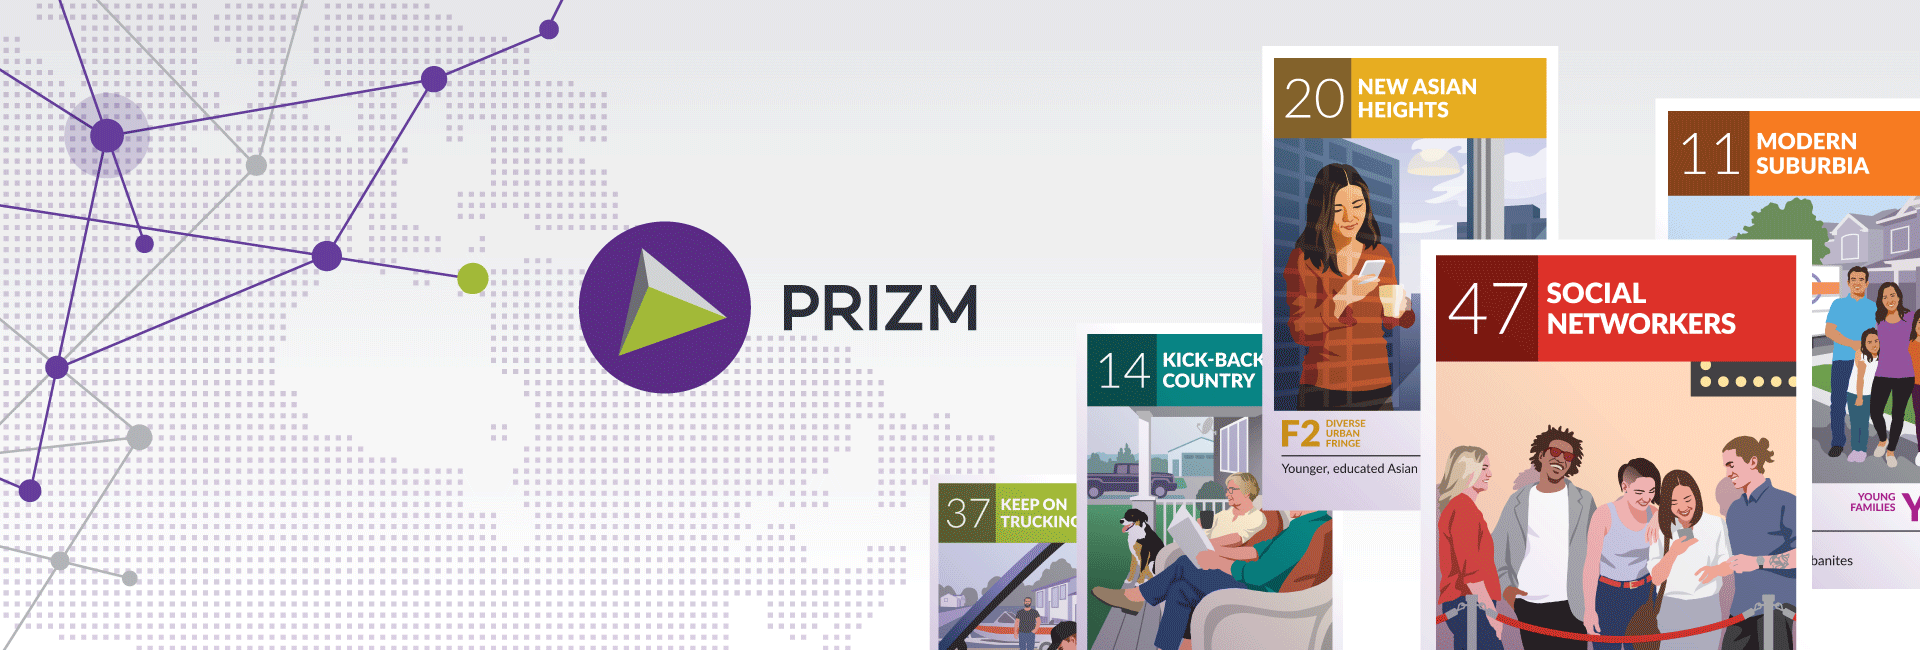 PRIZM Homepage Banner CAN 0920